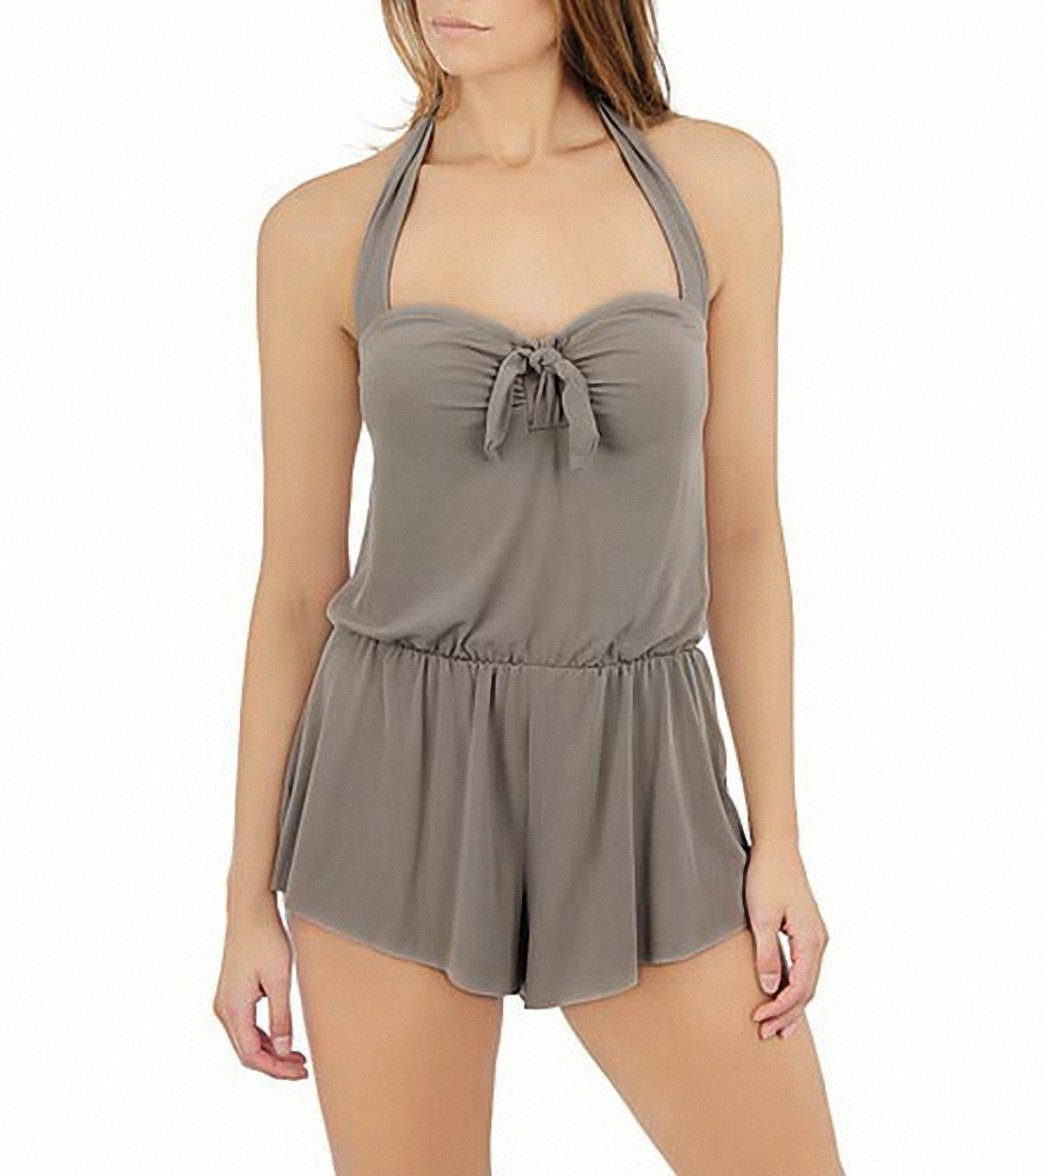 b2124524862 Magicsuit by Miraclesuit Solids Romy Romper Swimsuit at SwimOutlet.com -  Free Shipping